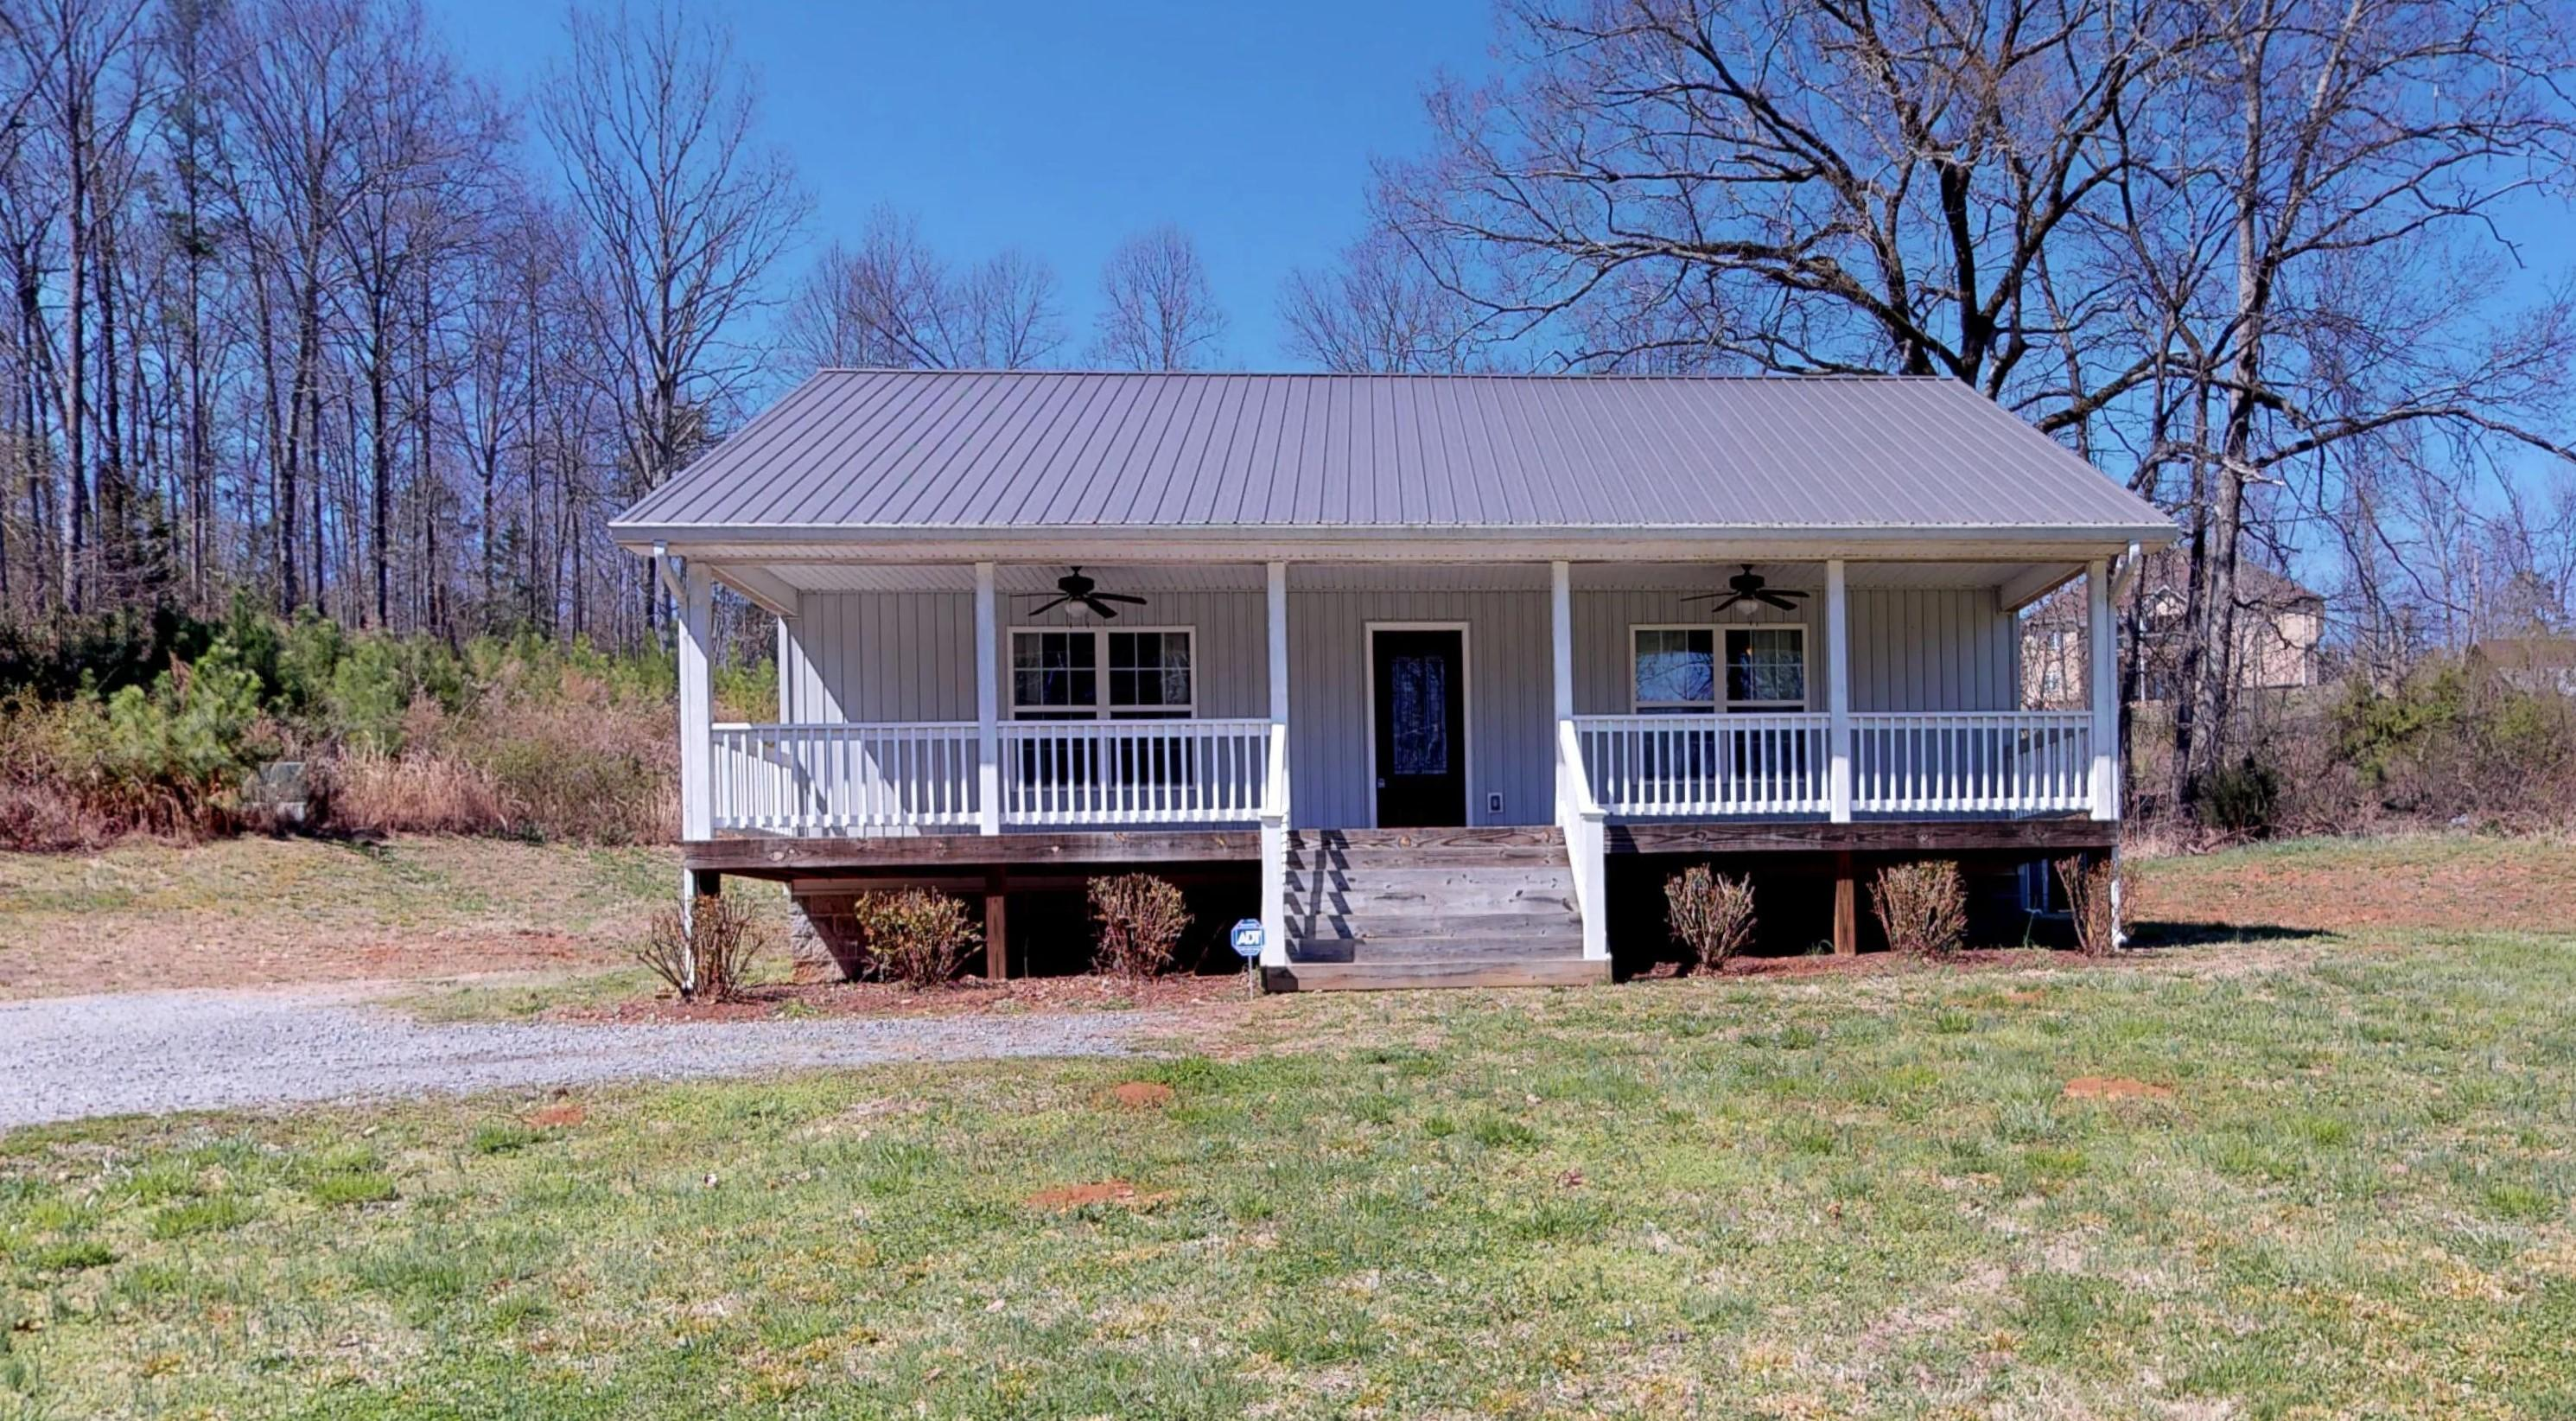 3091 Nw No Pone Rd, Georgetown, TN 37336